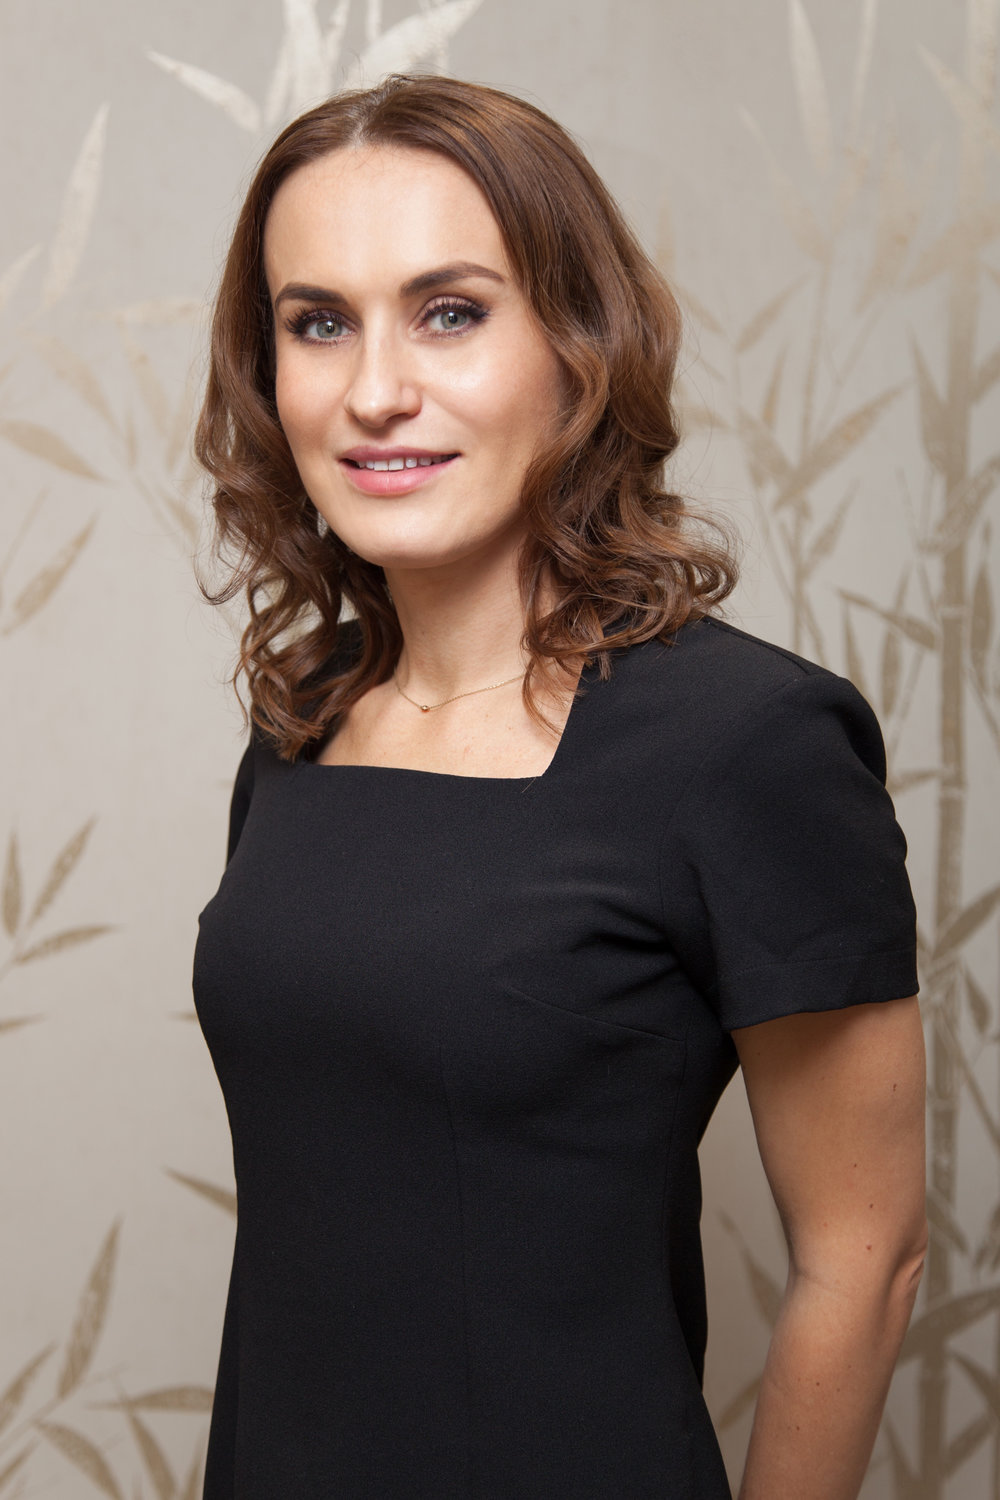 Alicia - AESTHETICIAN AND BEAUTY PROFESSIONALAs a Facialist and Aesthetic specialist within Mayfair, Alicia has a renowned name associated with excellence within the beauty industry. She has a great following of very loyal and high profile clients. There is a wide range of treatments such as the signature bespoke facials and the popular result driven FIRE & ICE Facial by iS Clinical - a rejuvenating treatment that bridges the gap between a mild facial and an invasive peel, with no downtime.